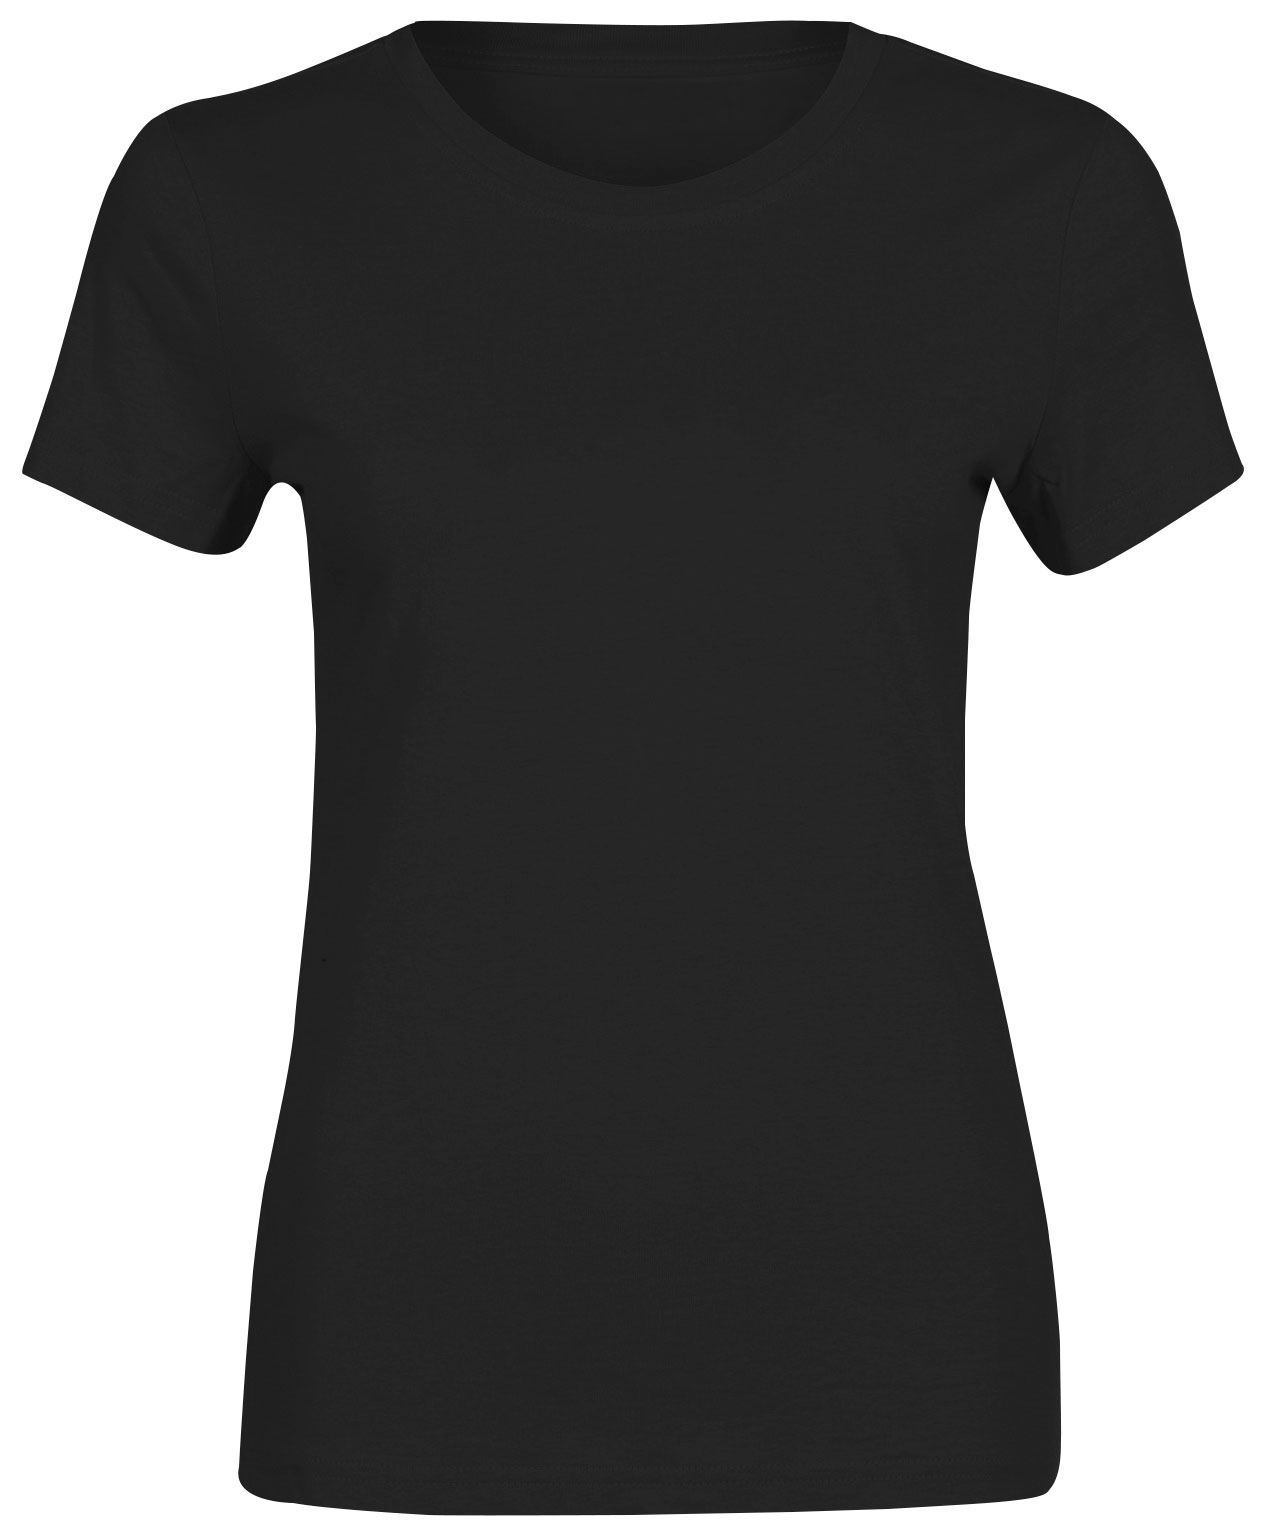 Womens Girls Short Sleeve T Shirt Plain Pure Cotton Tees ...